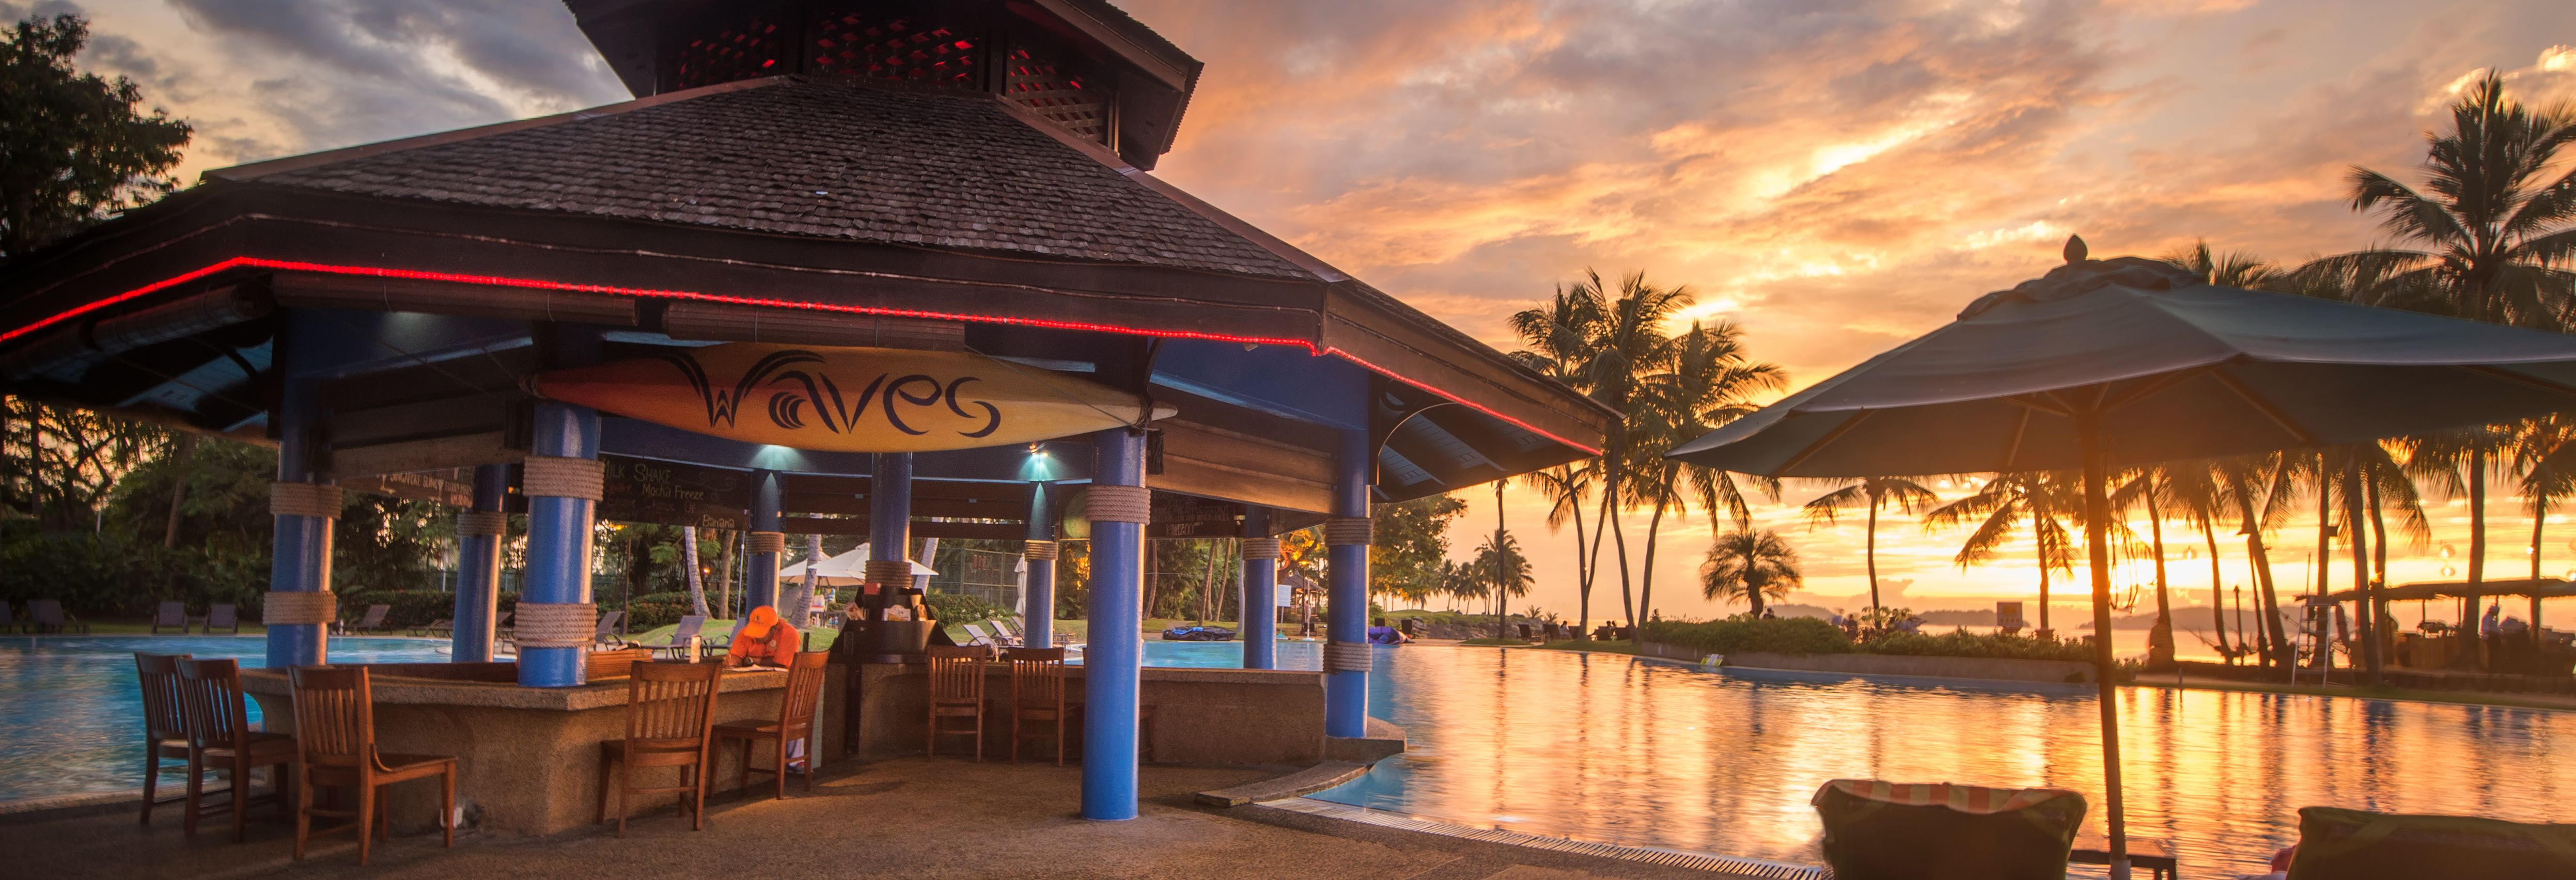 Sabah | The Pacific Sutera Hotel, Malaysia Discount Offer ...